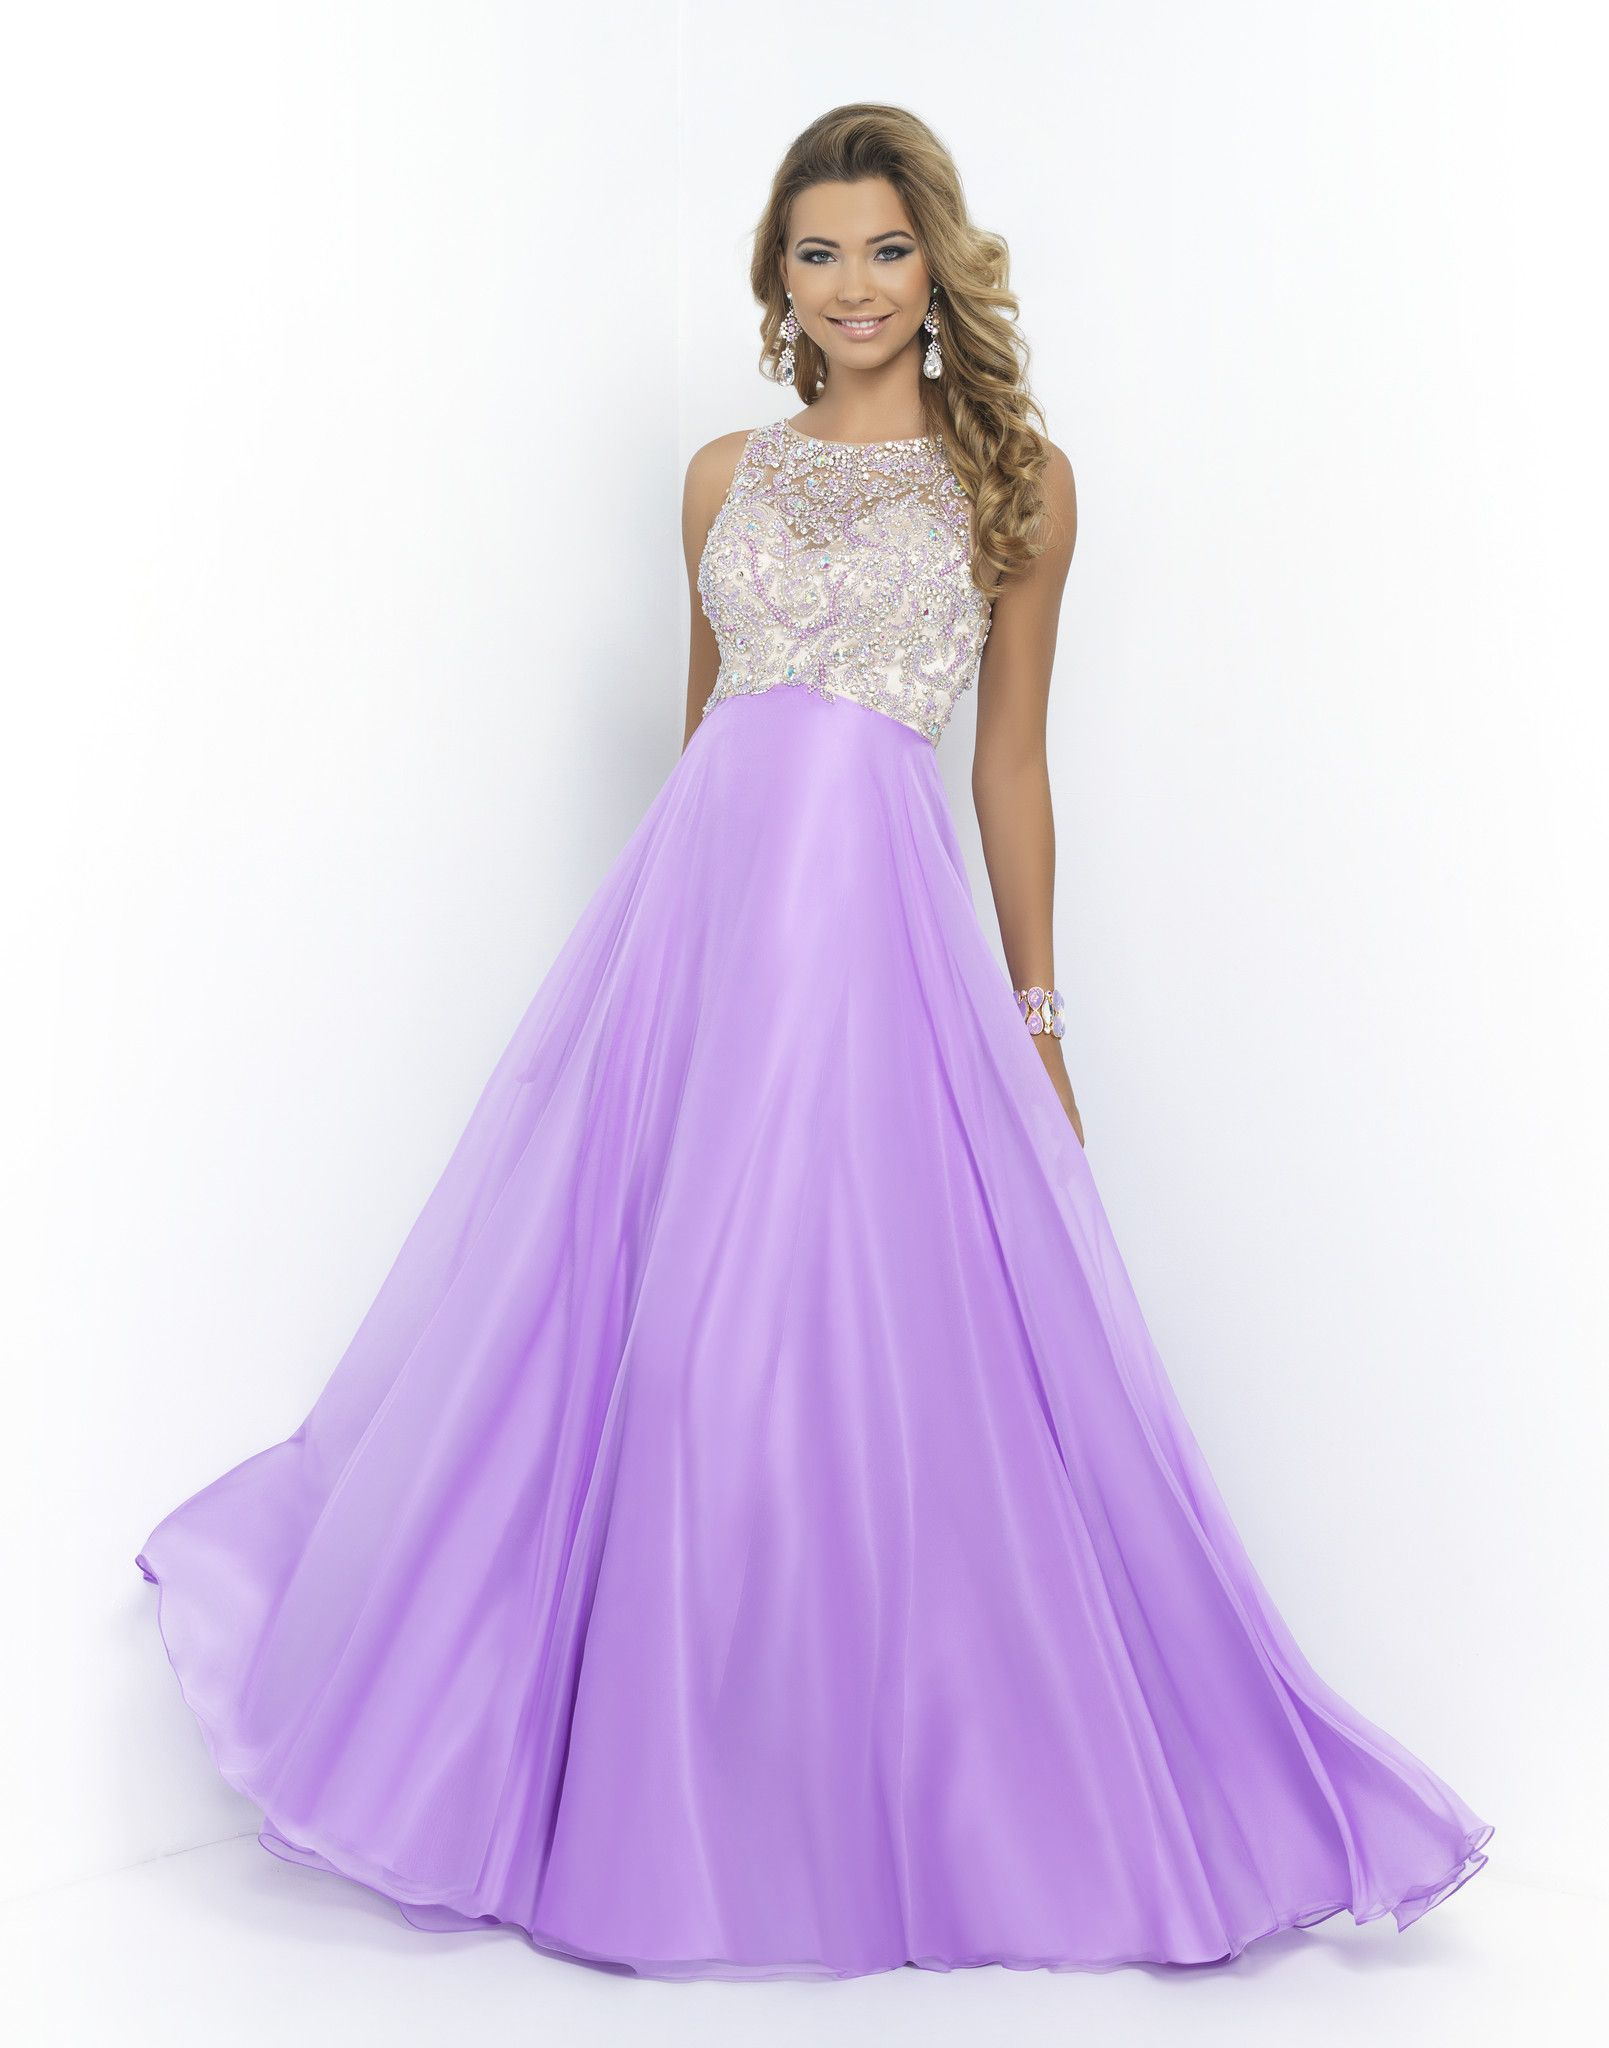 Blush prom orchid polished empire waist gown that is both sweet